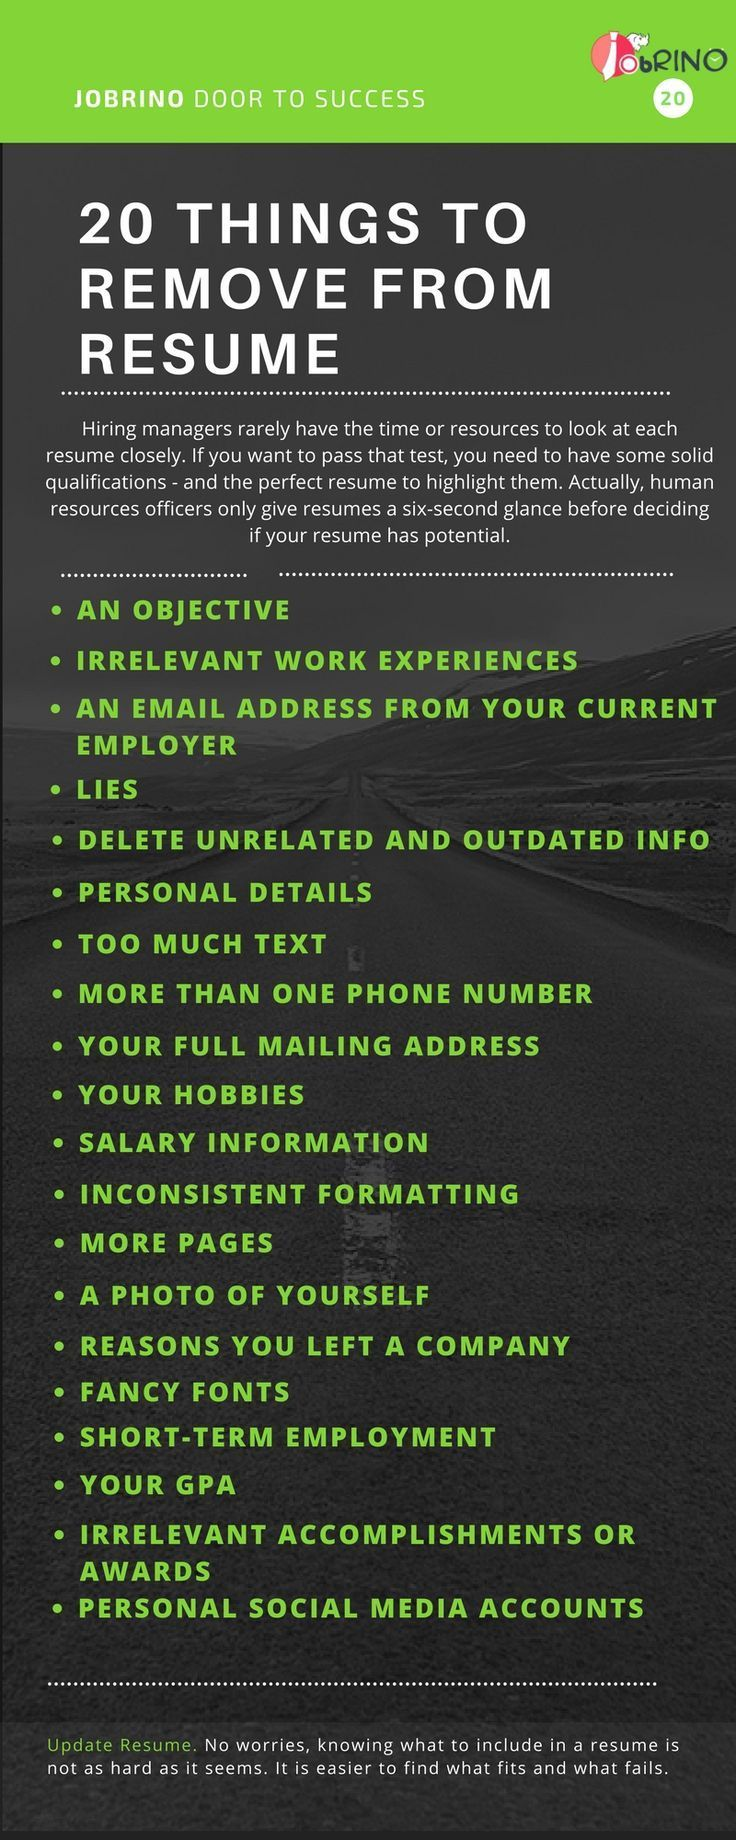 How to Write an Effective Resume to Find a Job | Pinterest ...